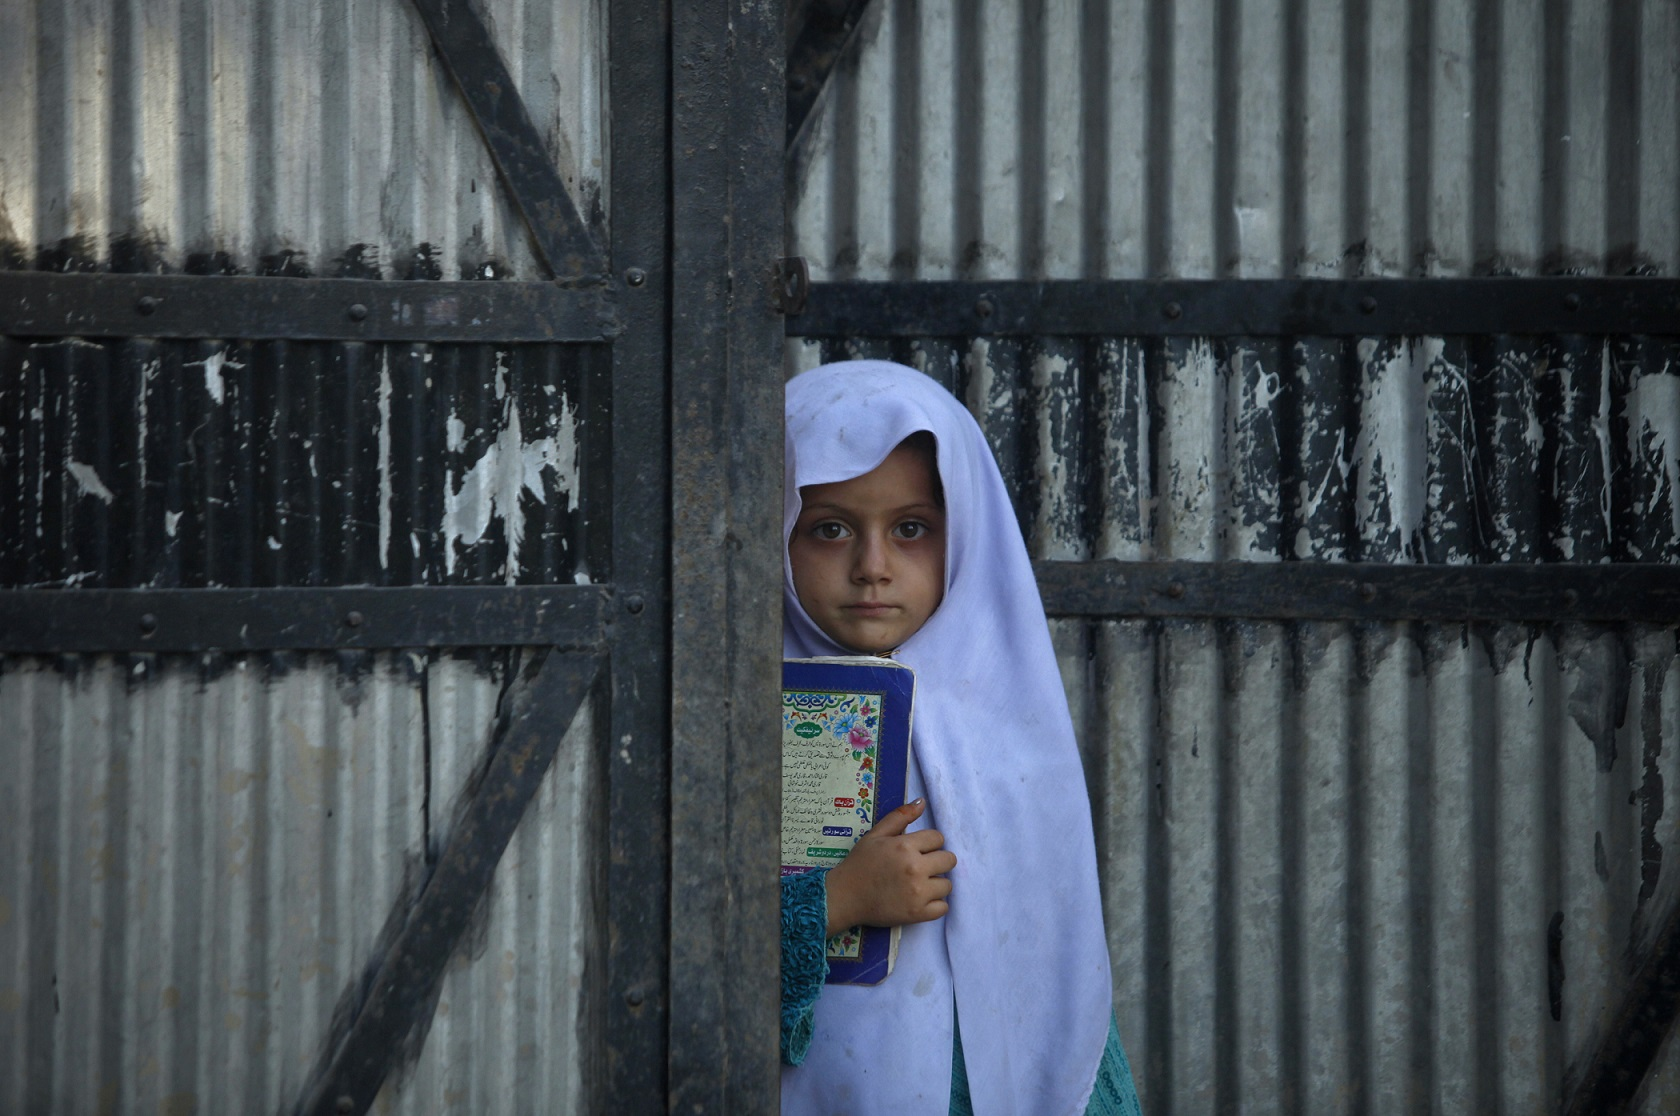 Noreen, a 6-year-old Pashtun girl, holds a book as she stands at the doorway of her family house in the outskirts of Peshawar October 11, 2012.  REUTERS/Fayaz Aziz     (PAKISTAN - Tags: SOCIETY TPX IMAGES OF THE DAY) - GM1E8AB1TKJ01